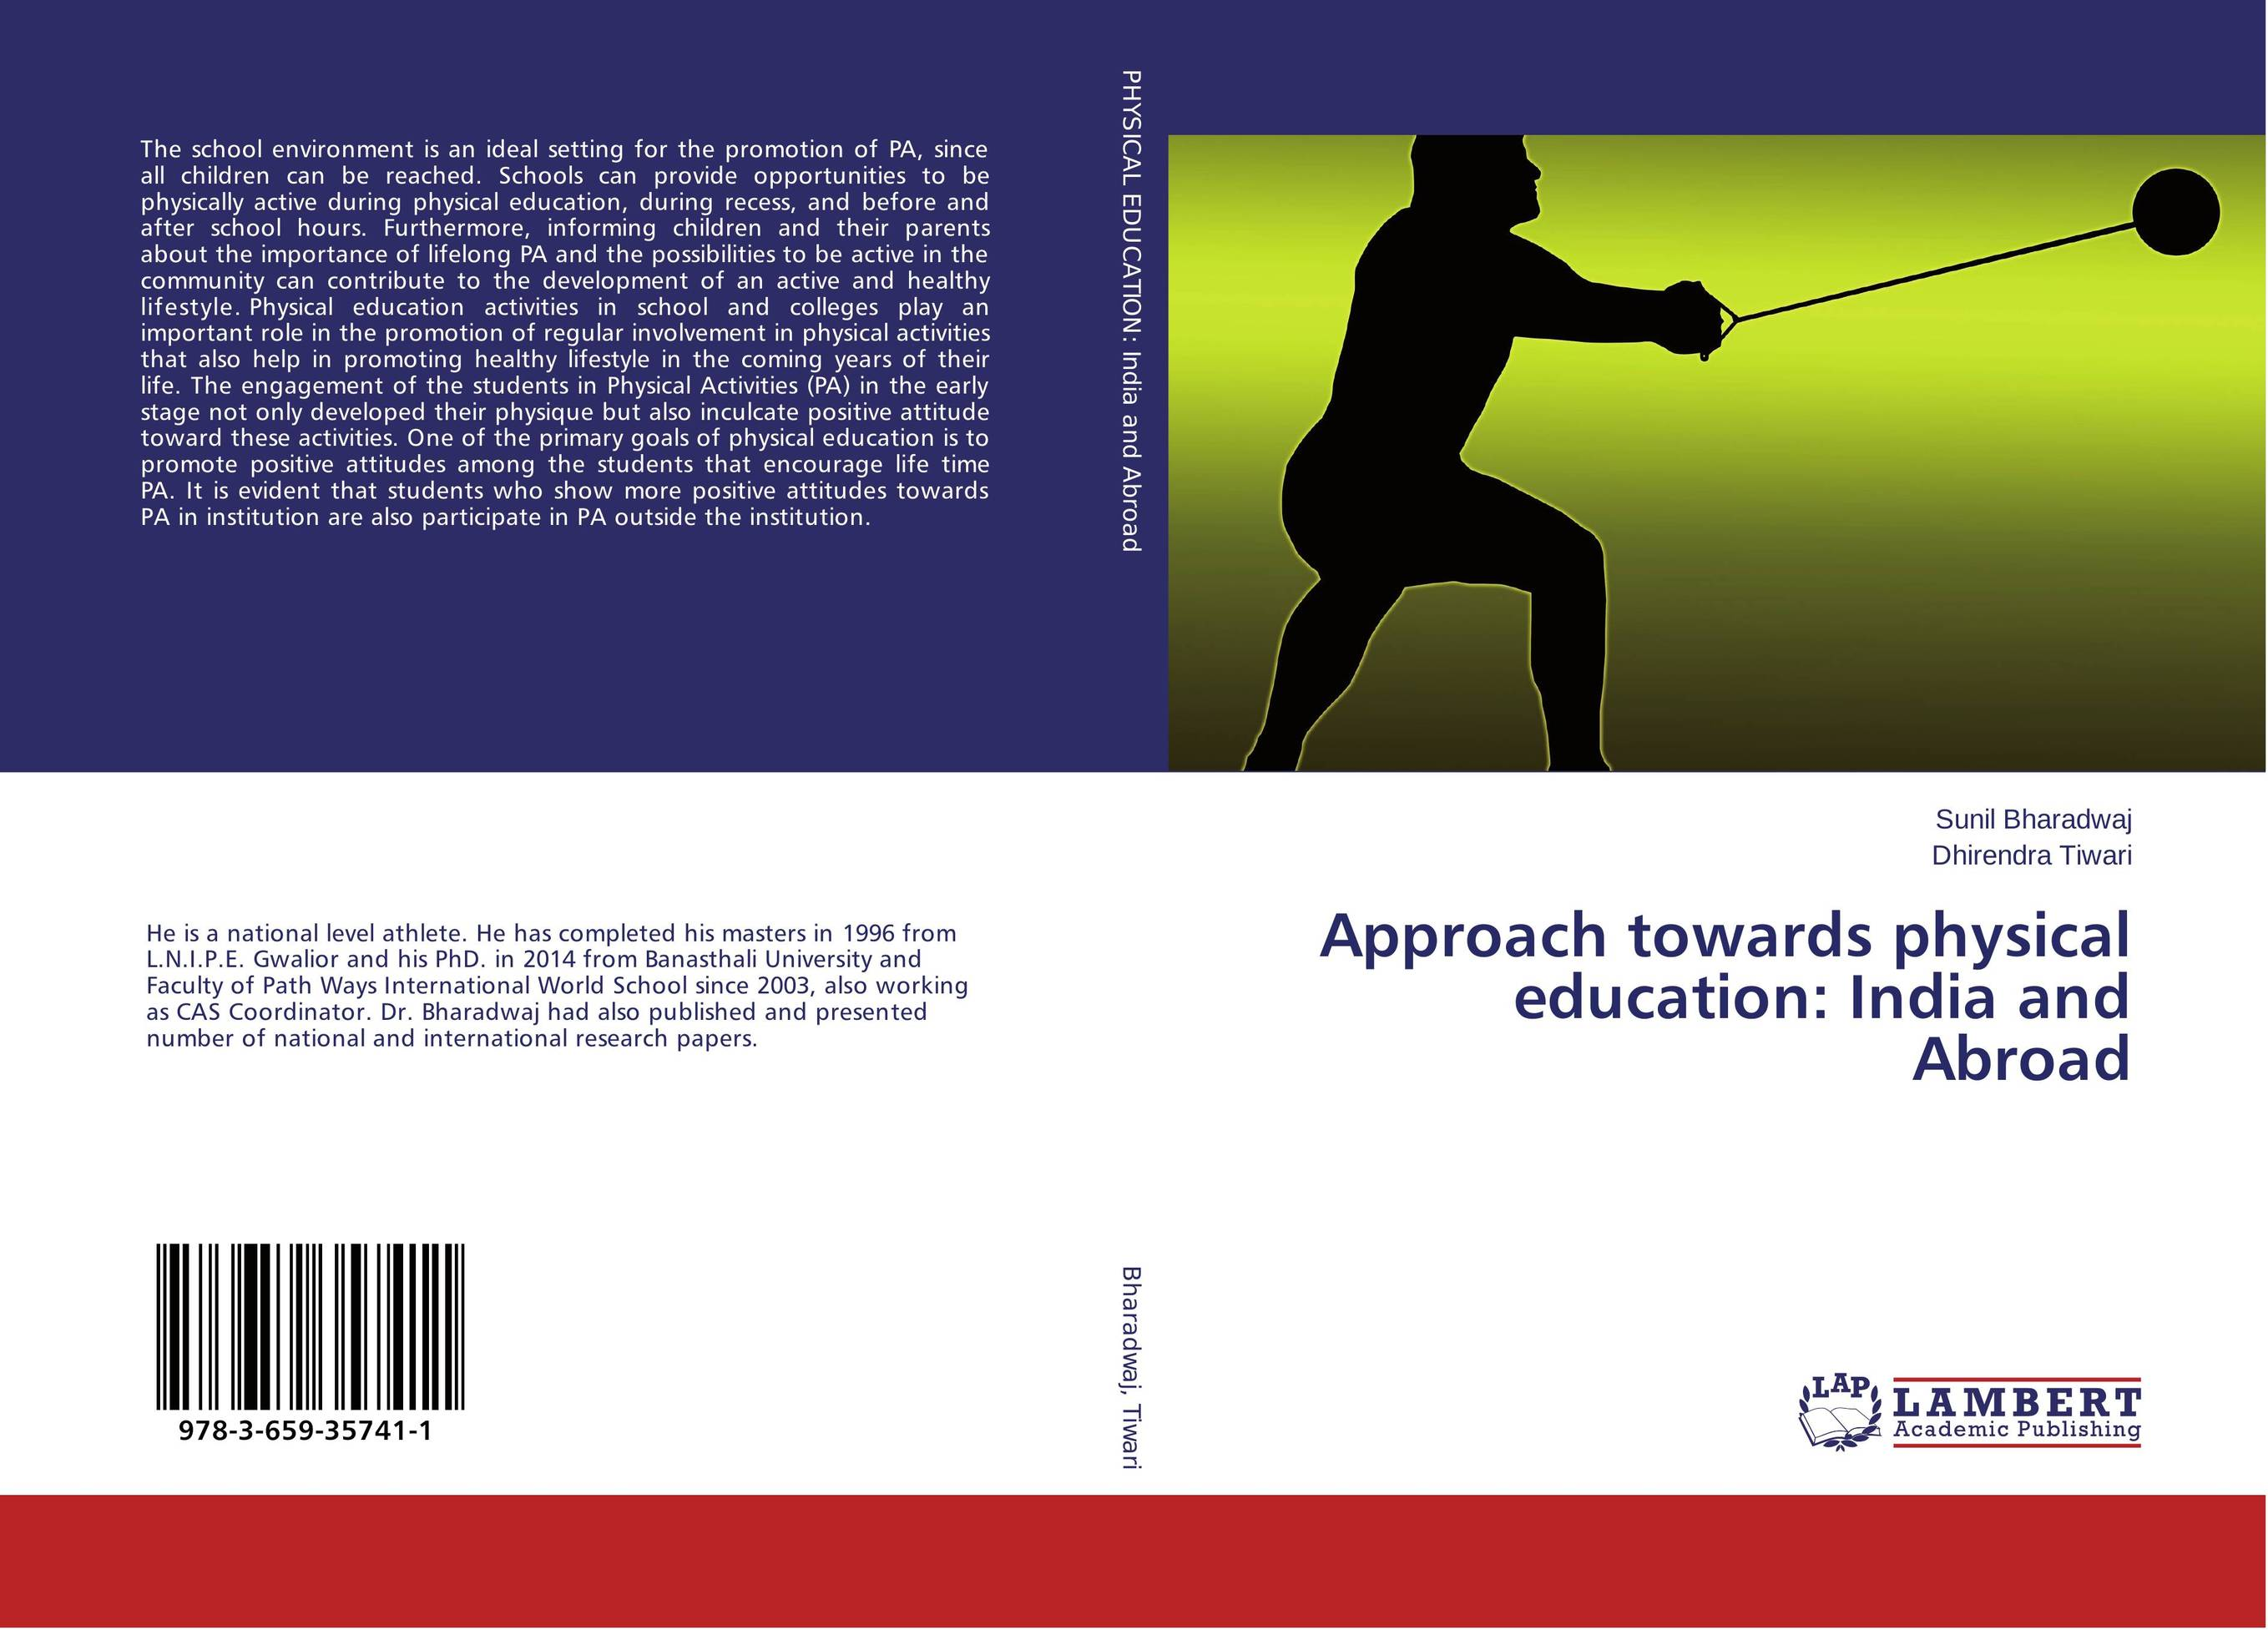 Approach towards physical education: India and Abroad role of school leadership in promoting moral integrity among students